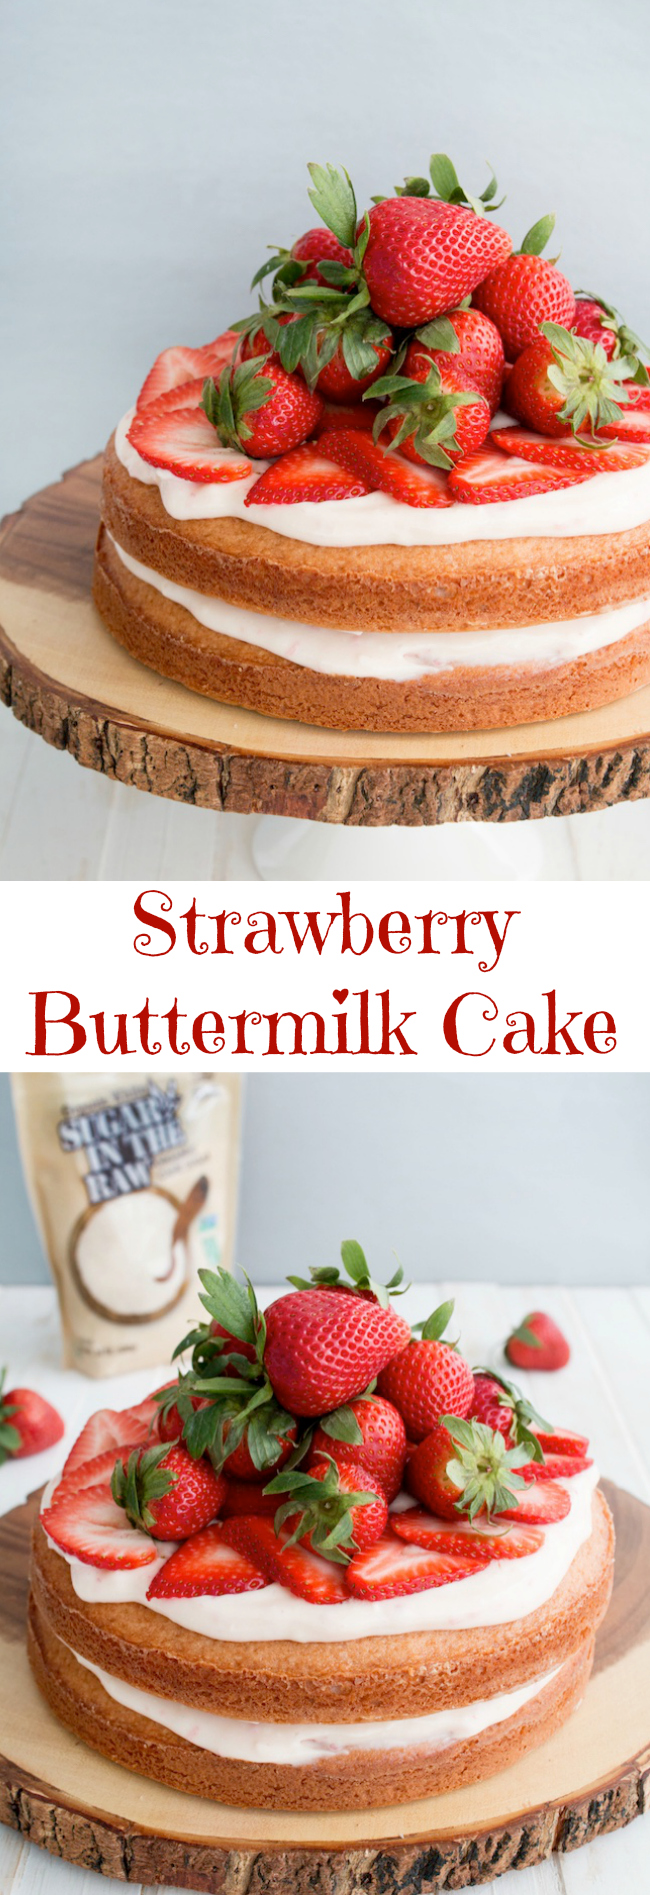 There are so many strawberry recipes but one of my favorites is the Strawberry Buttermilk Cake recipe featuring Sugar In The Raw Organic White®.